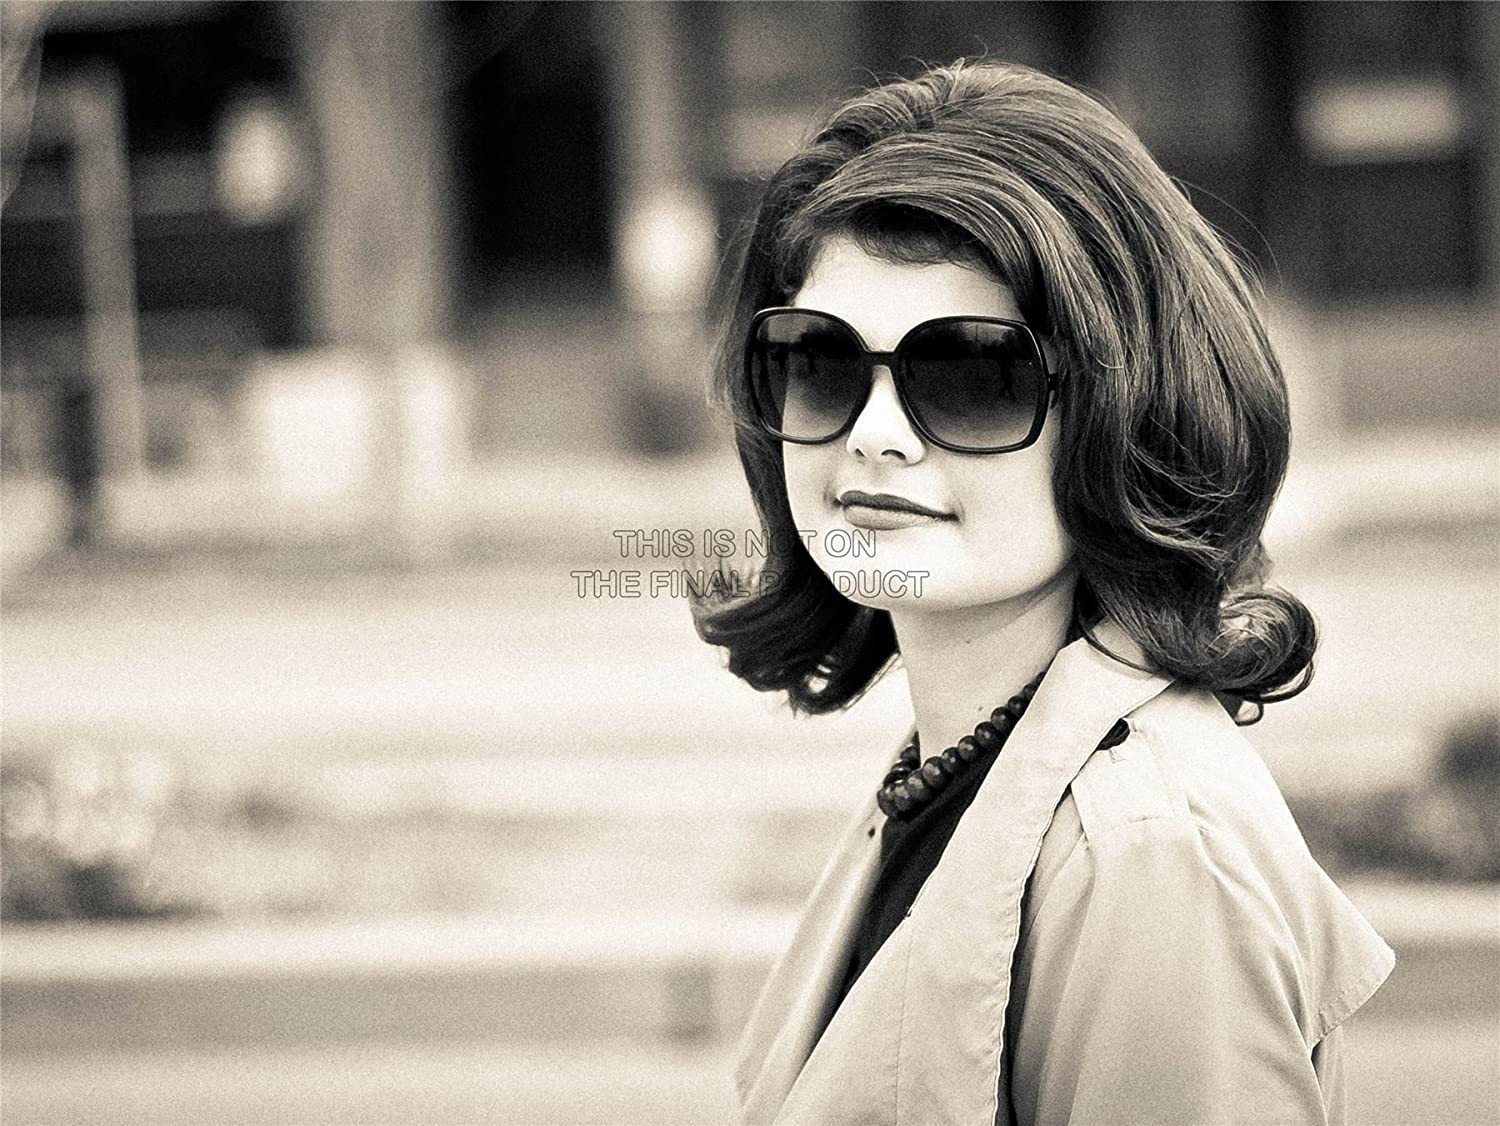 Doppelganger33 LTD Vintage First Lady Jackie O Kennedy Shades JFK Large Art Print Poster Wall Decor 18x24 inch